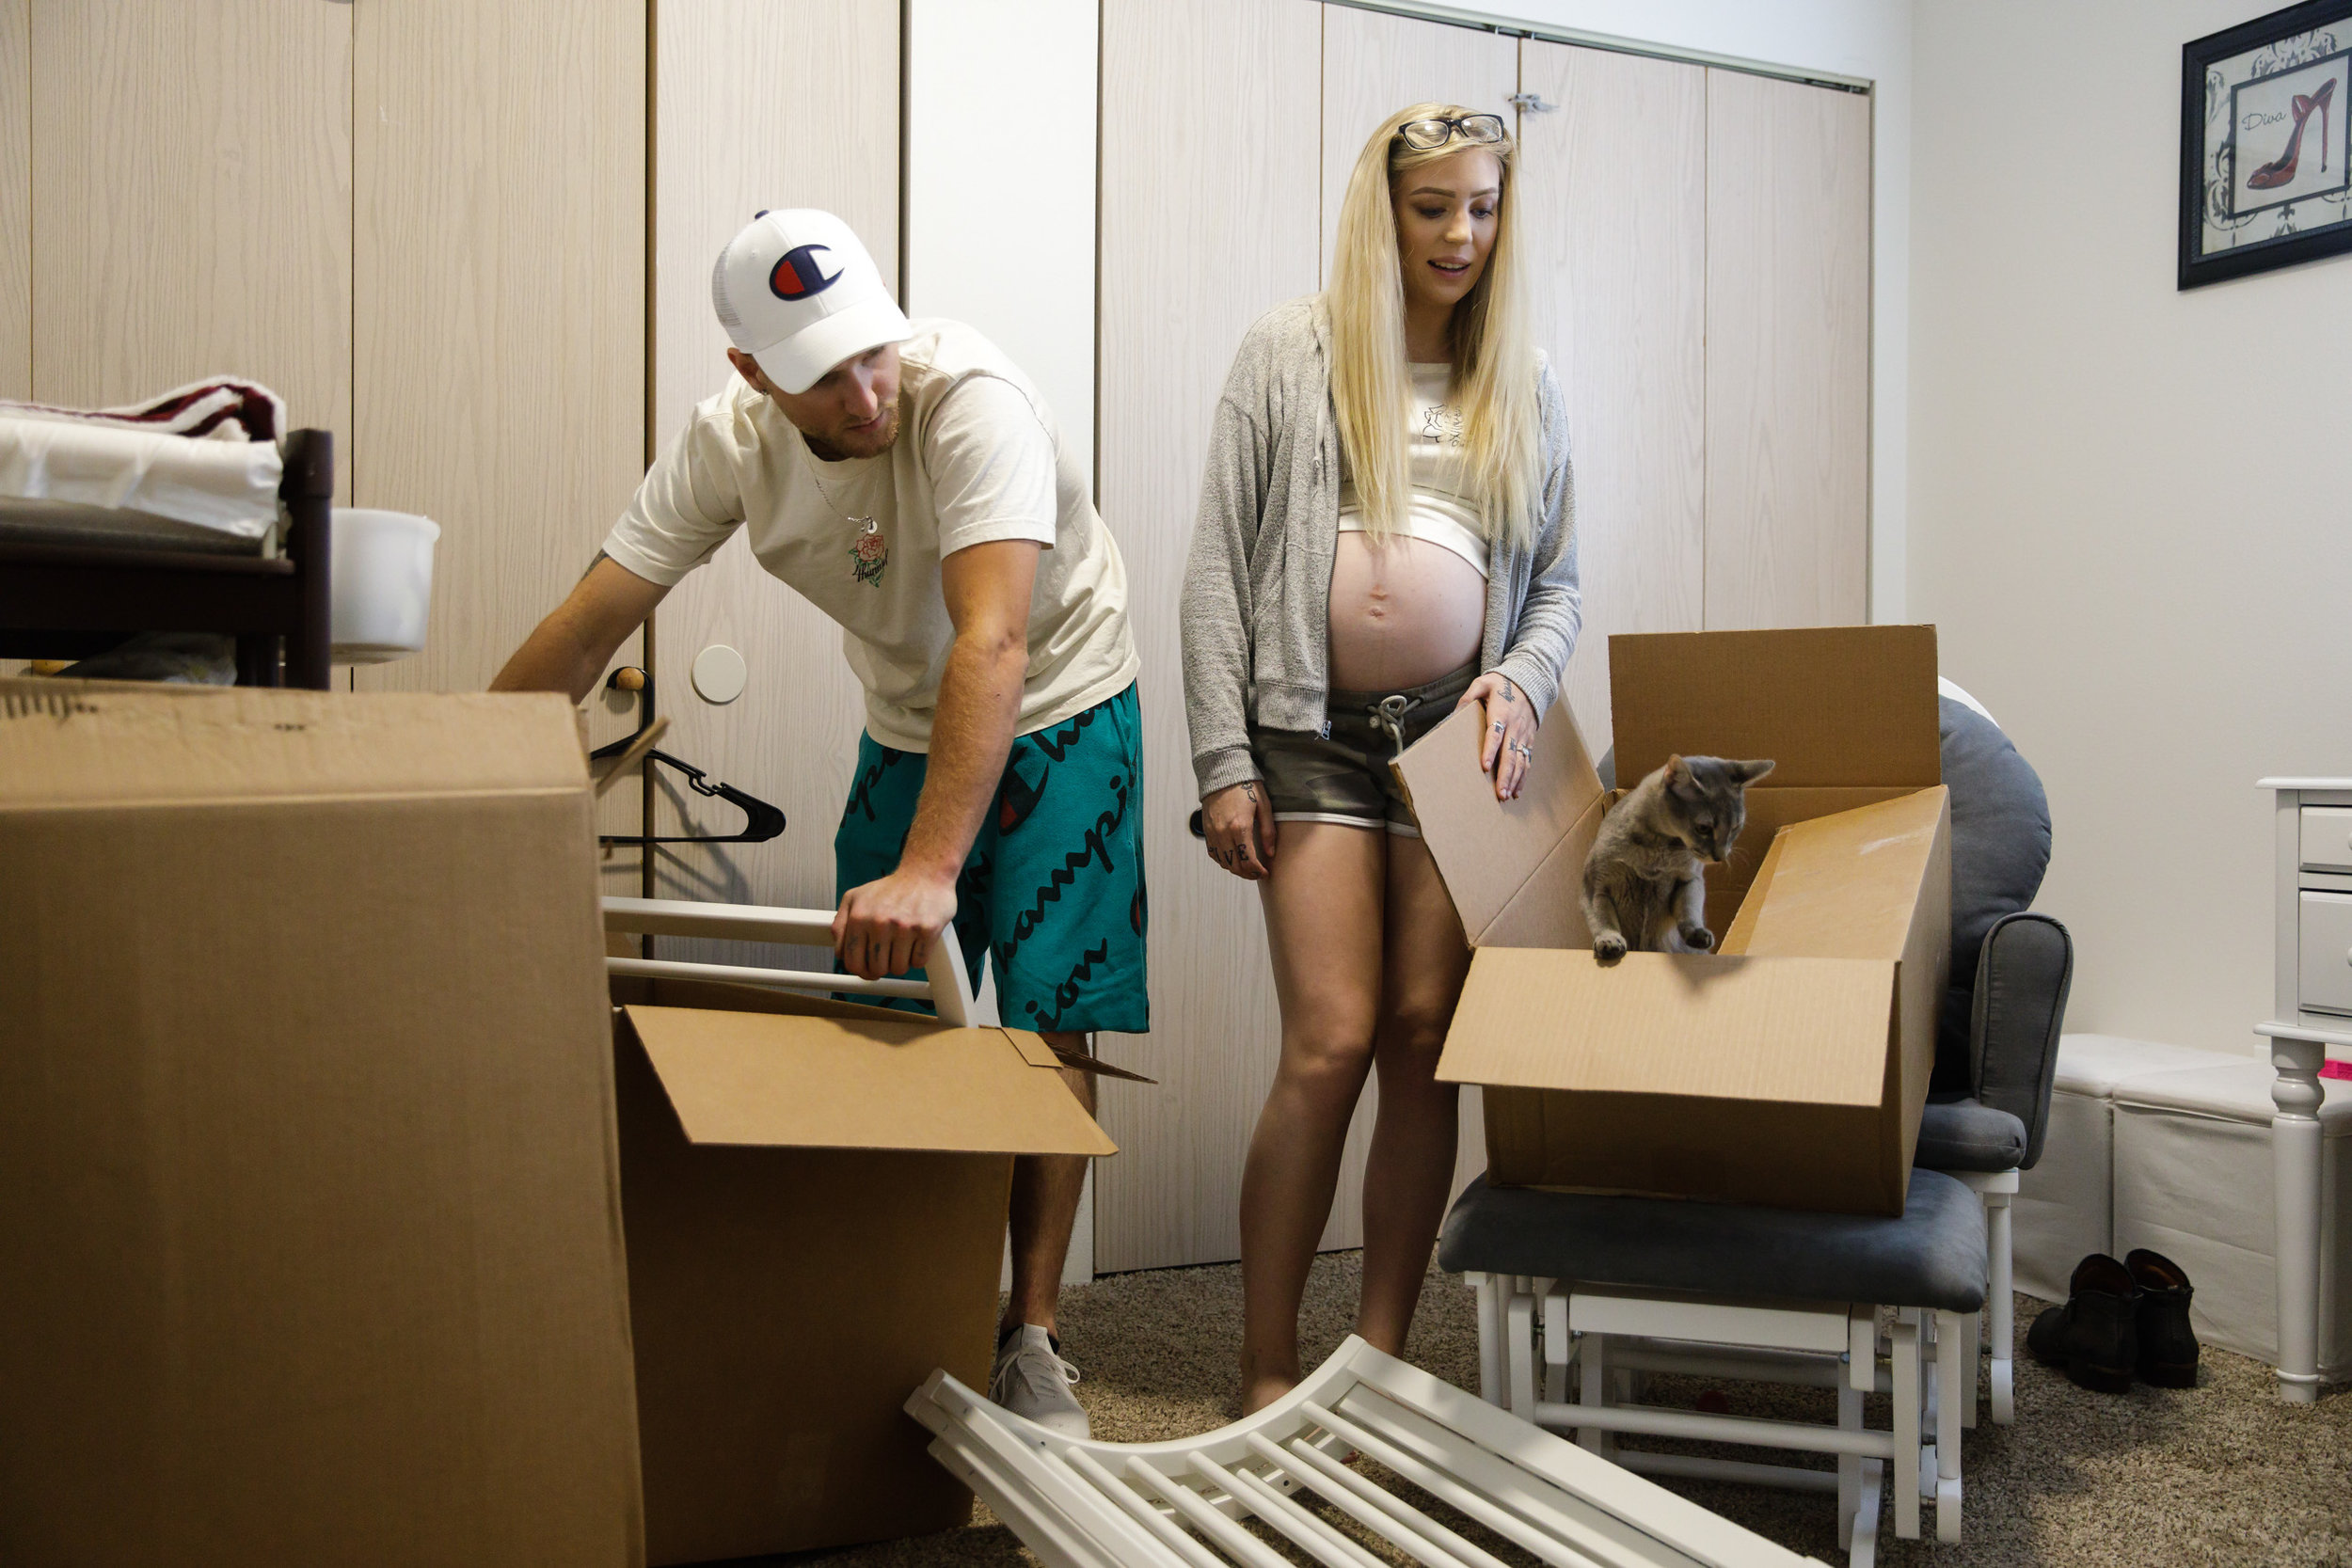 Hallie Martin and Monty McGary setting up a nursery in their home.   CREDIT: LEAH NASH FOR FINDING FIXES »